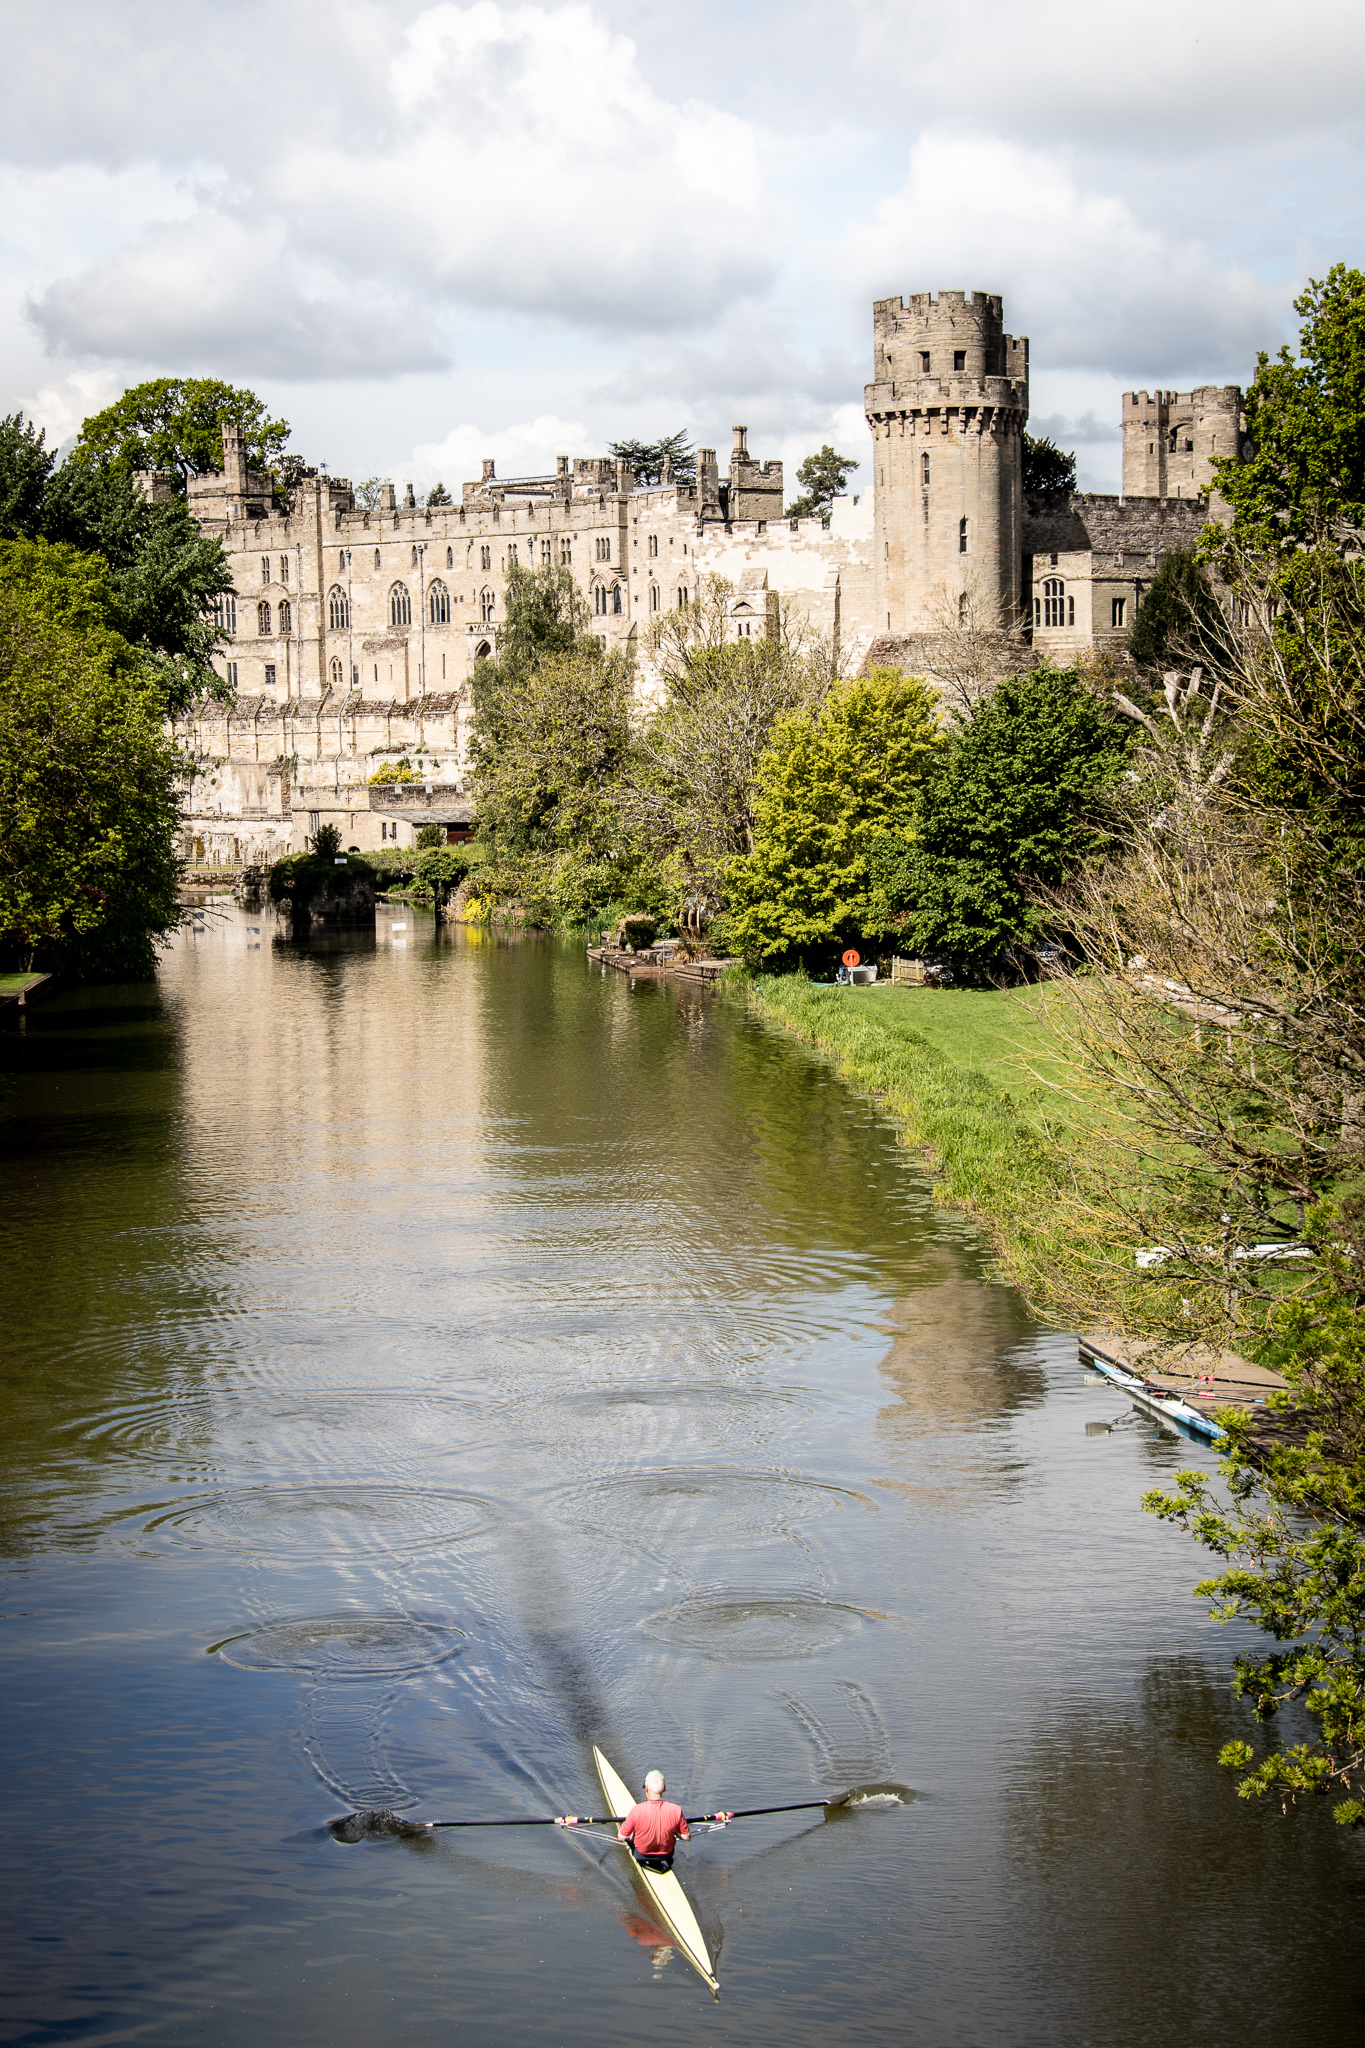 A view of Warwick Castle from Castle Bridge on the River Avon. A man is rowing down the River Avon and ripples show his path down the river.